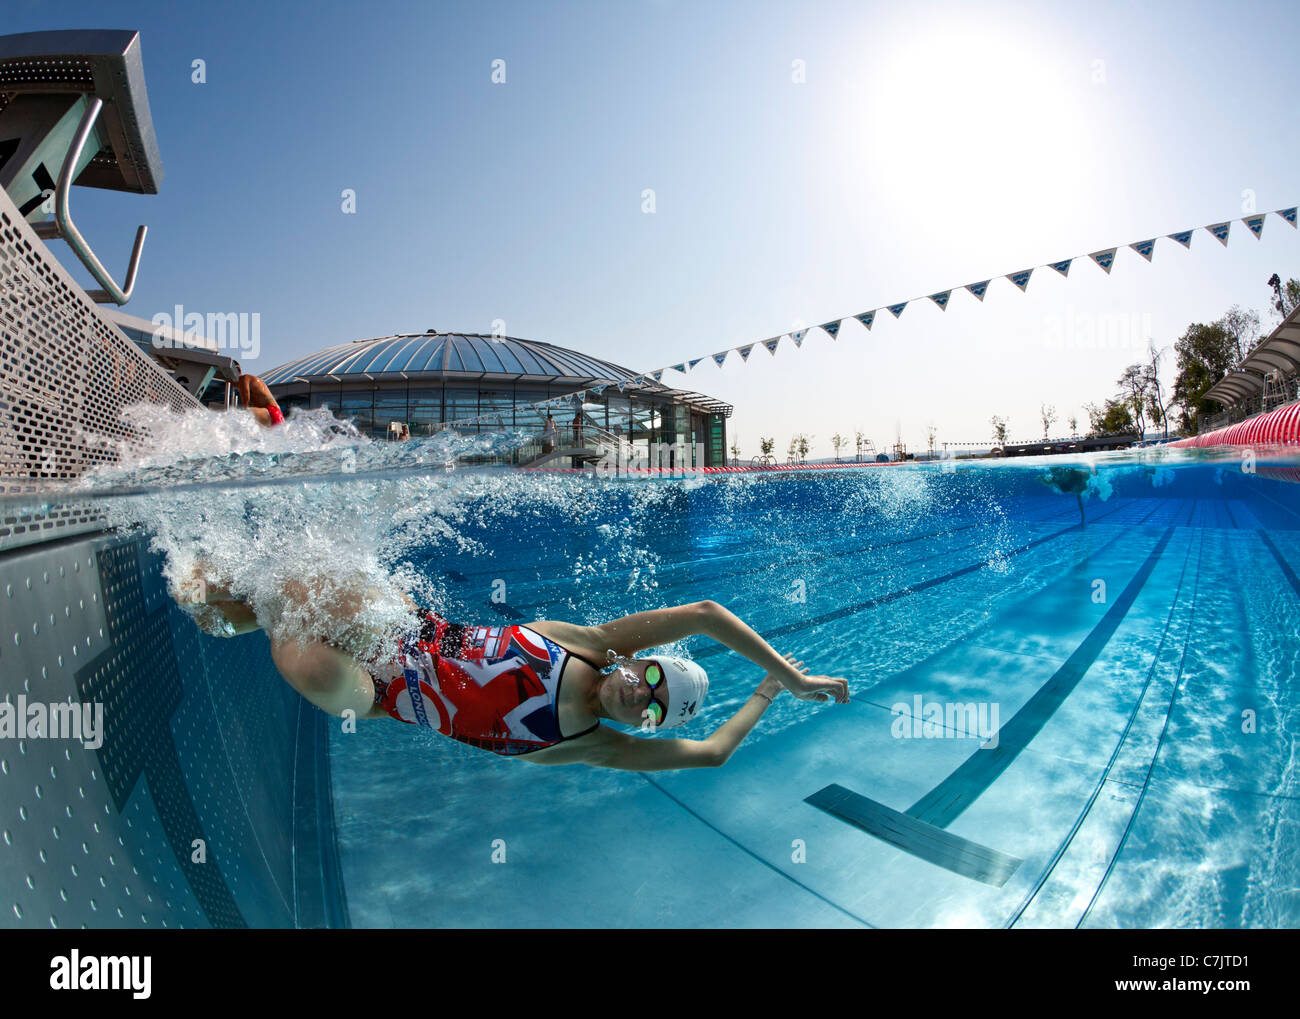 A Female Swimmer Training In An Open Air Olympic Swimming Pool Stock Photo 39137645 Alamy